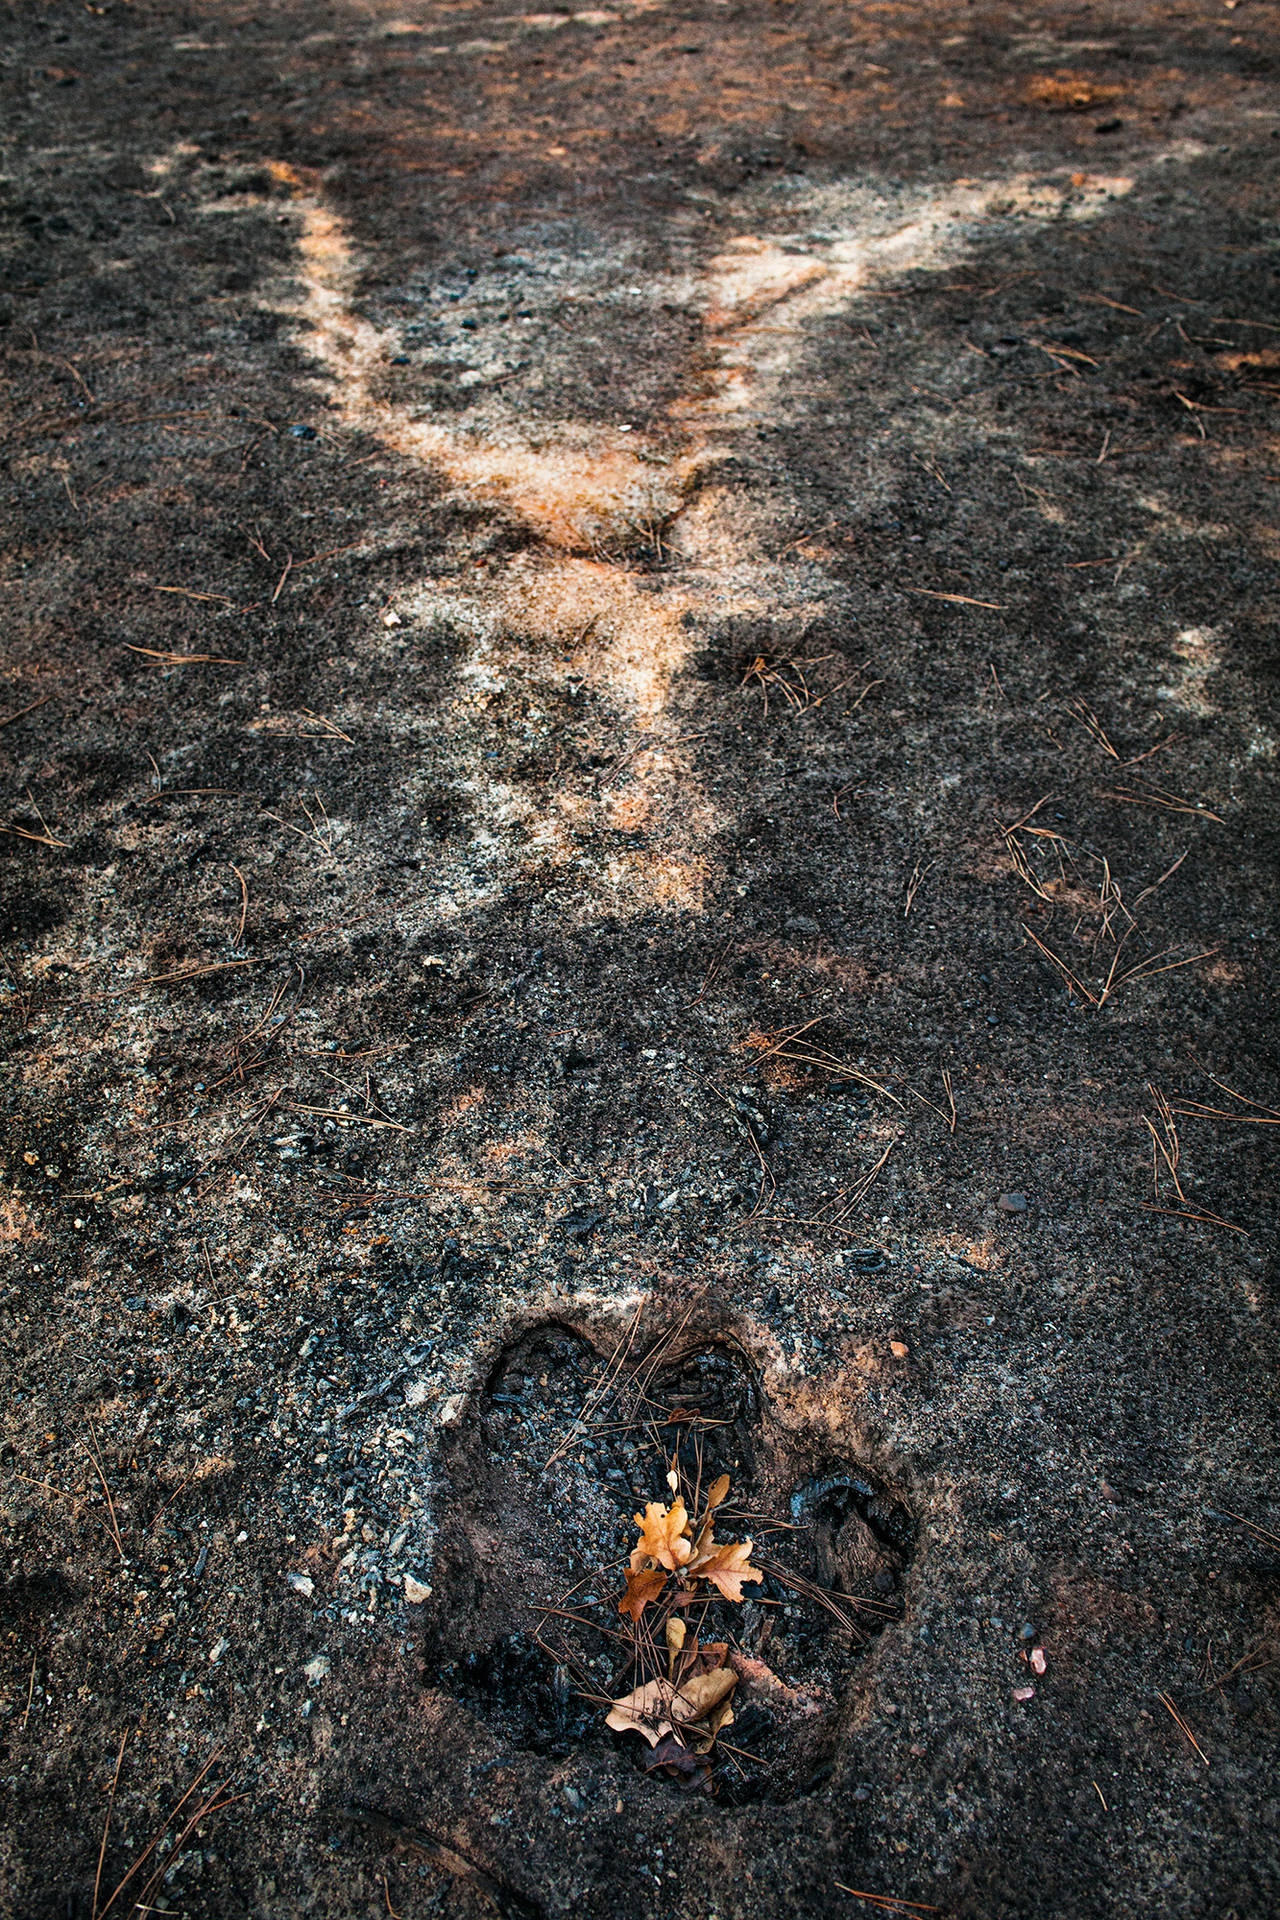 Stump hole and ash from a burned tree, East Bastrop, Texas